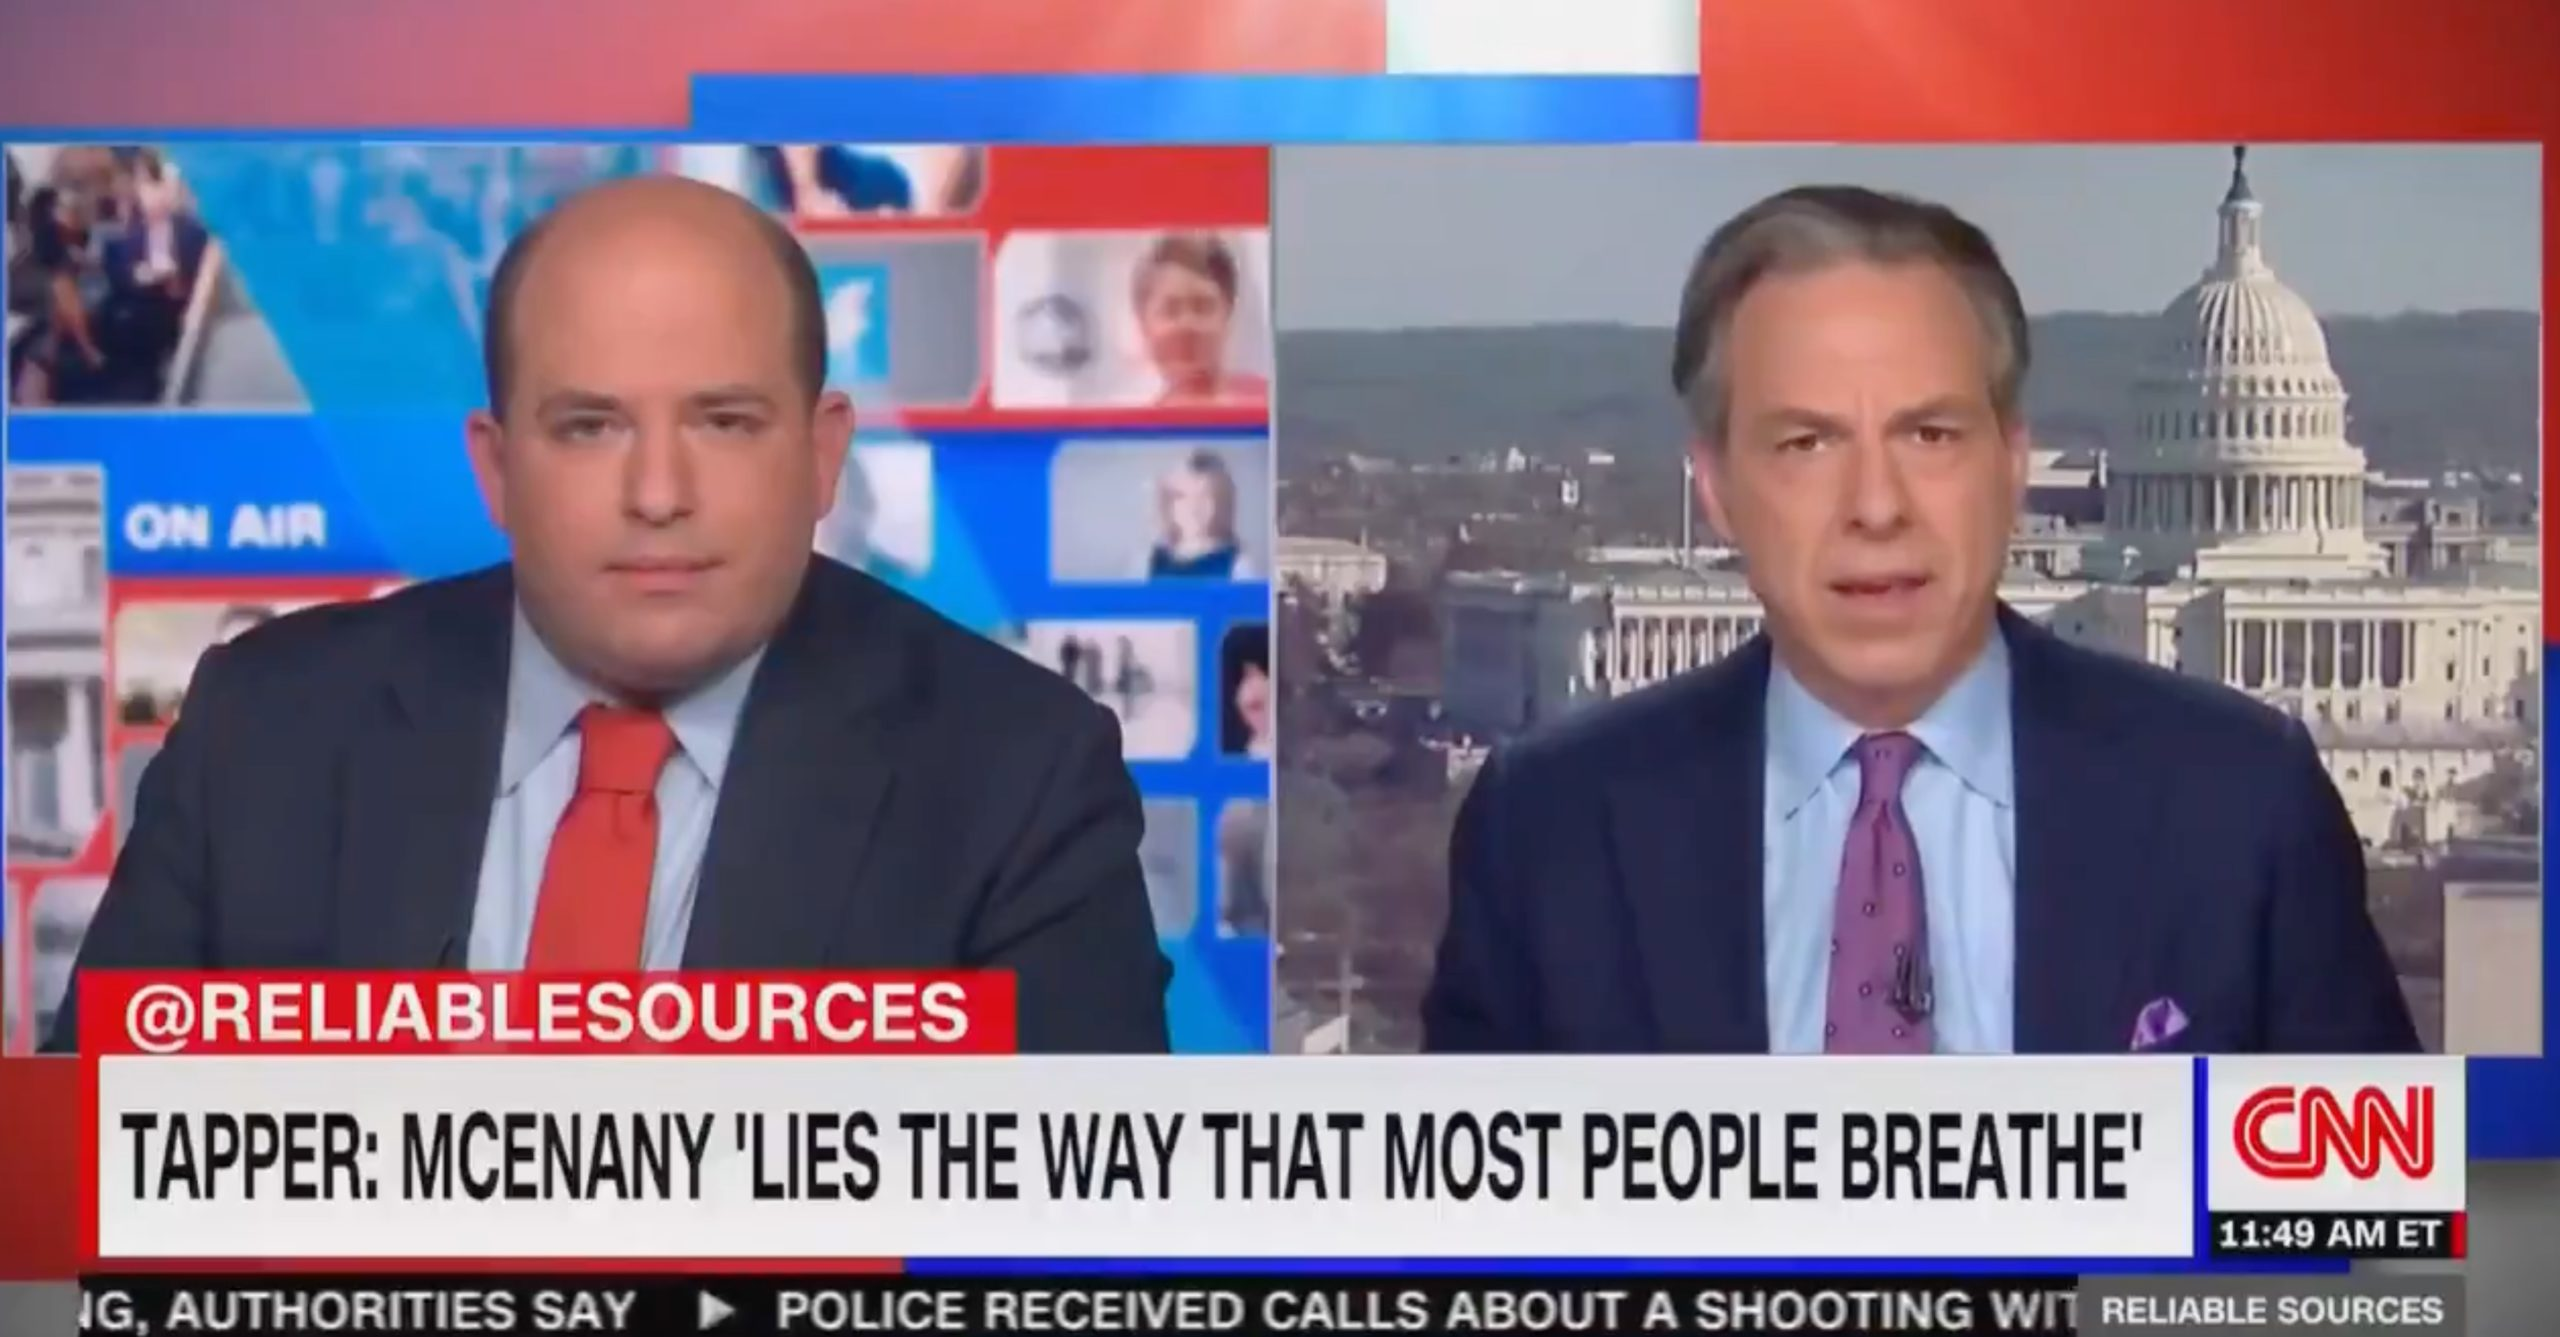 Jake Tapper: Kayleigh McEnany lies the way most people breathe.